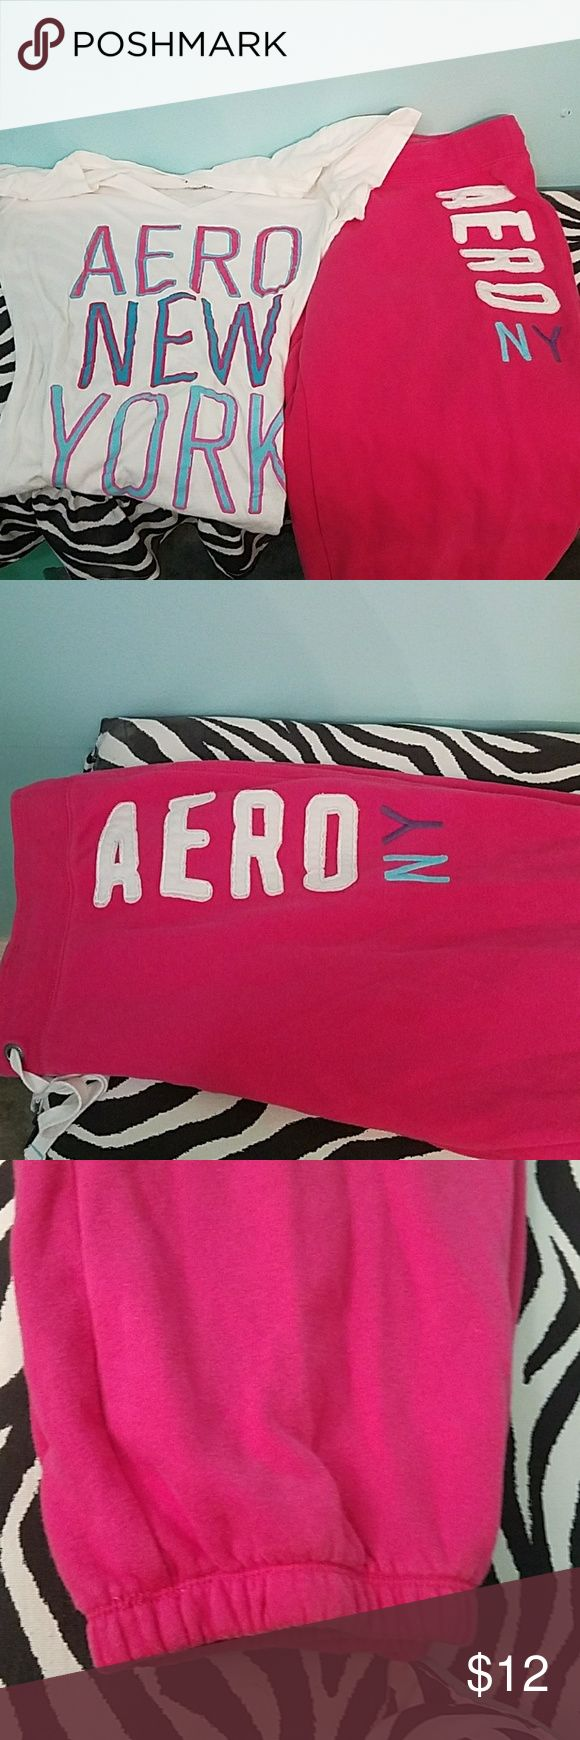 Ladies Aeropostale set Jogging pants style (cut short, like Capri length) with coordinating top,  worn but still tons of life left in this set! So cute on, especially with converse in a matching color! Aeropostale Other